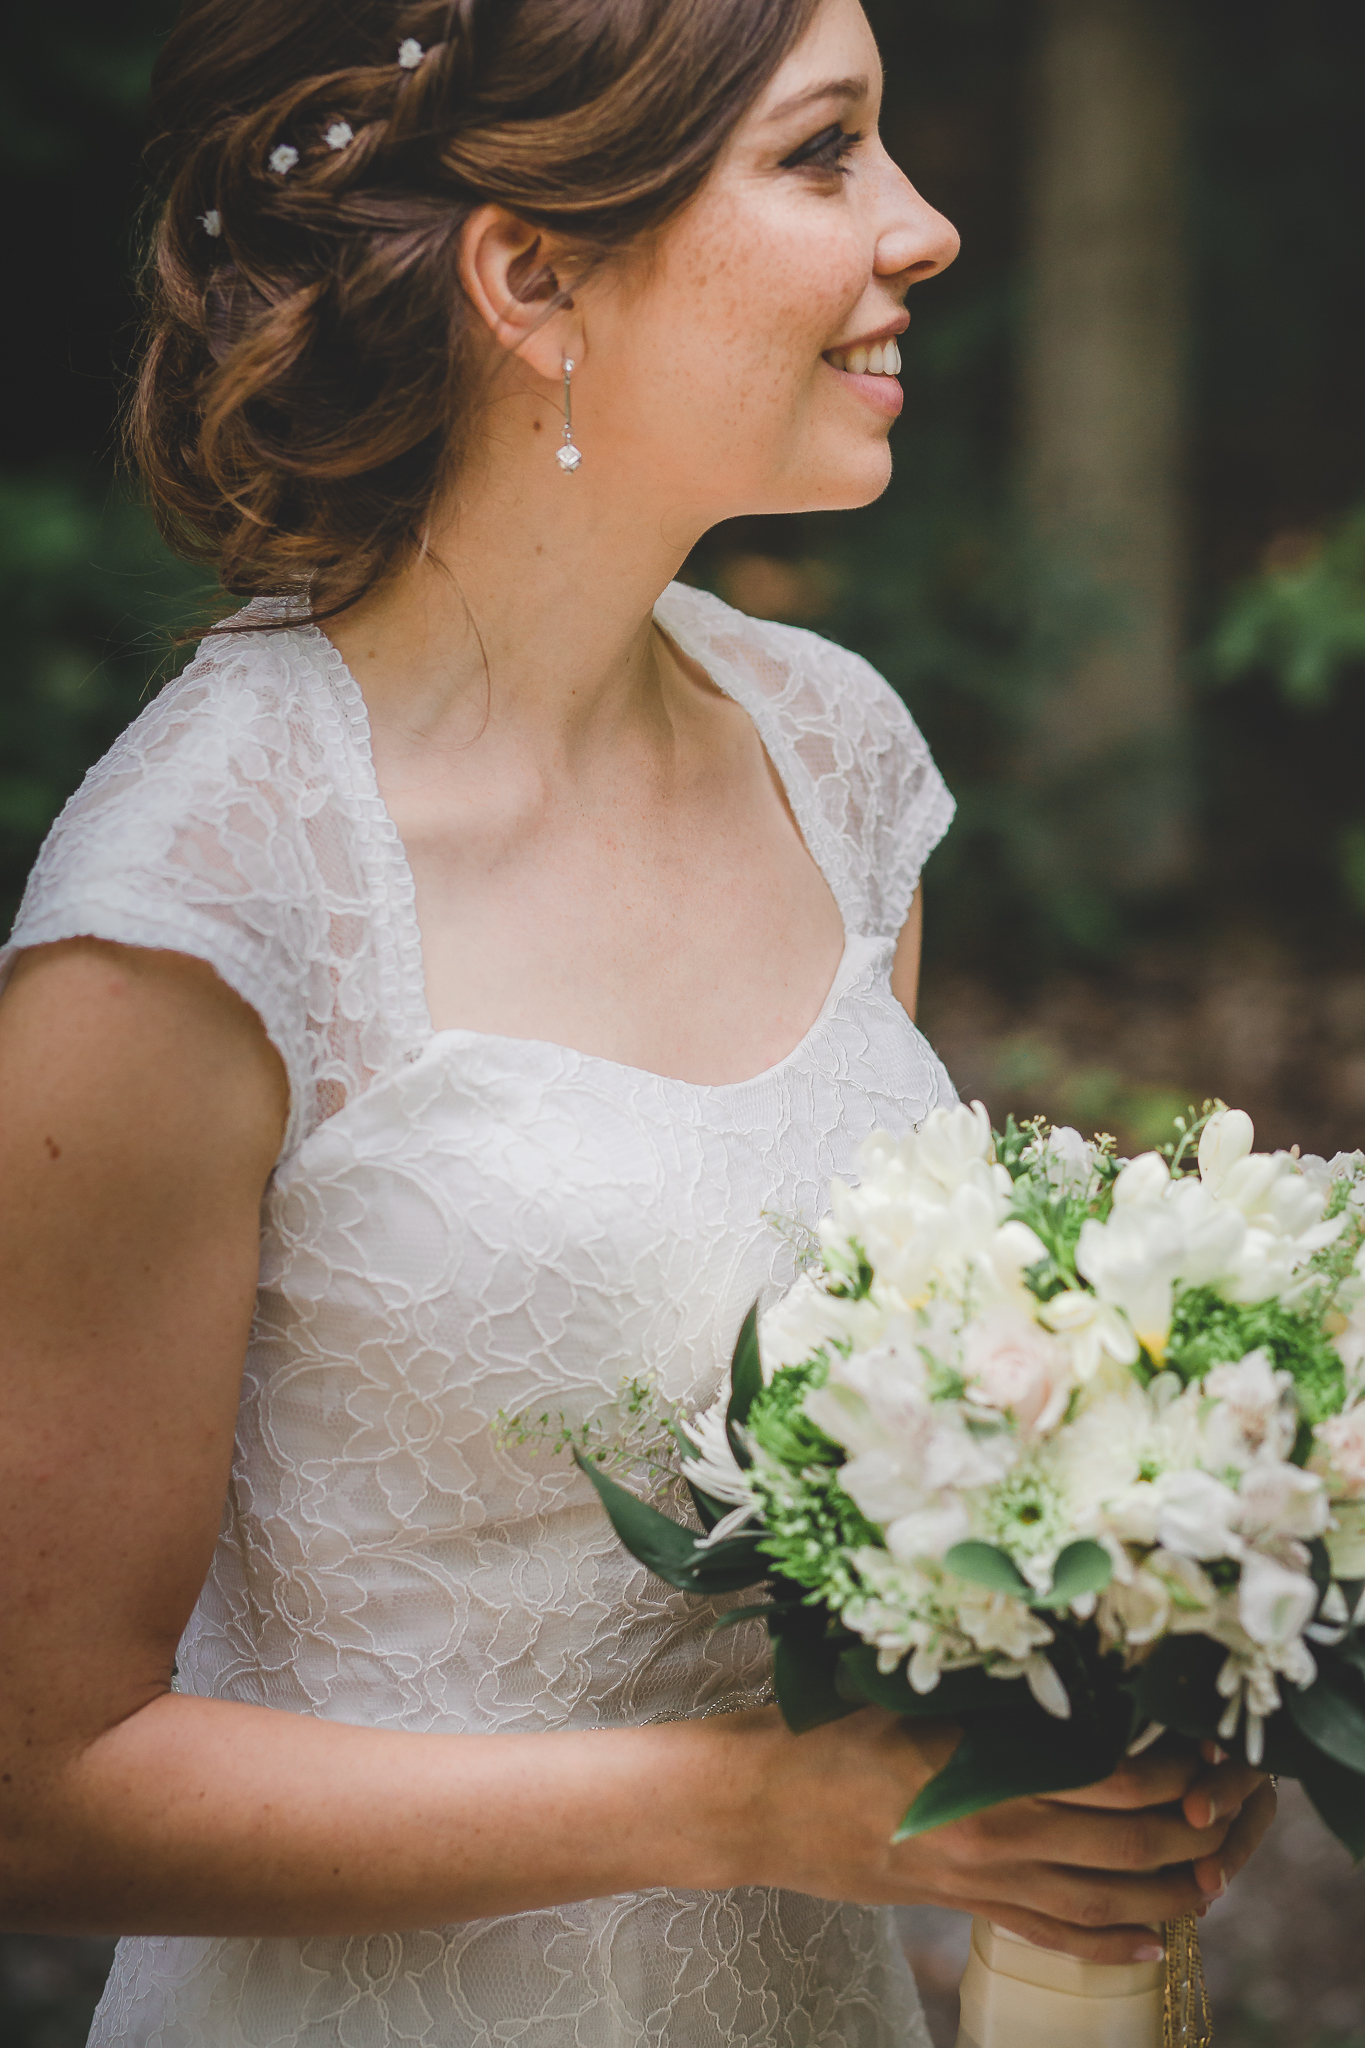 First Look- Amy D Photography- Wedding Photography- Barrie Wedding Photographer - Barrie Wedding Photography- Wedding First Look- First Look Forest-6.jpg